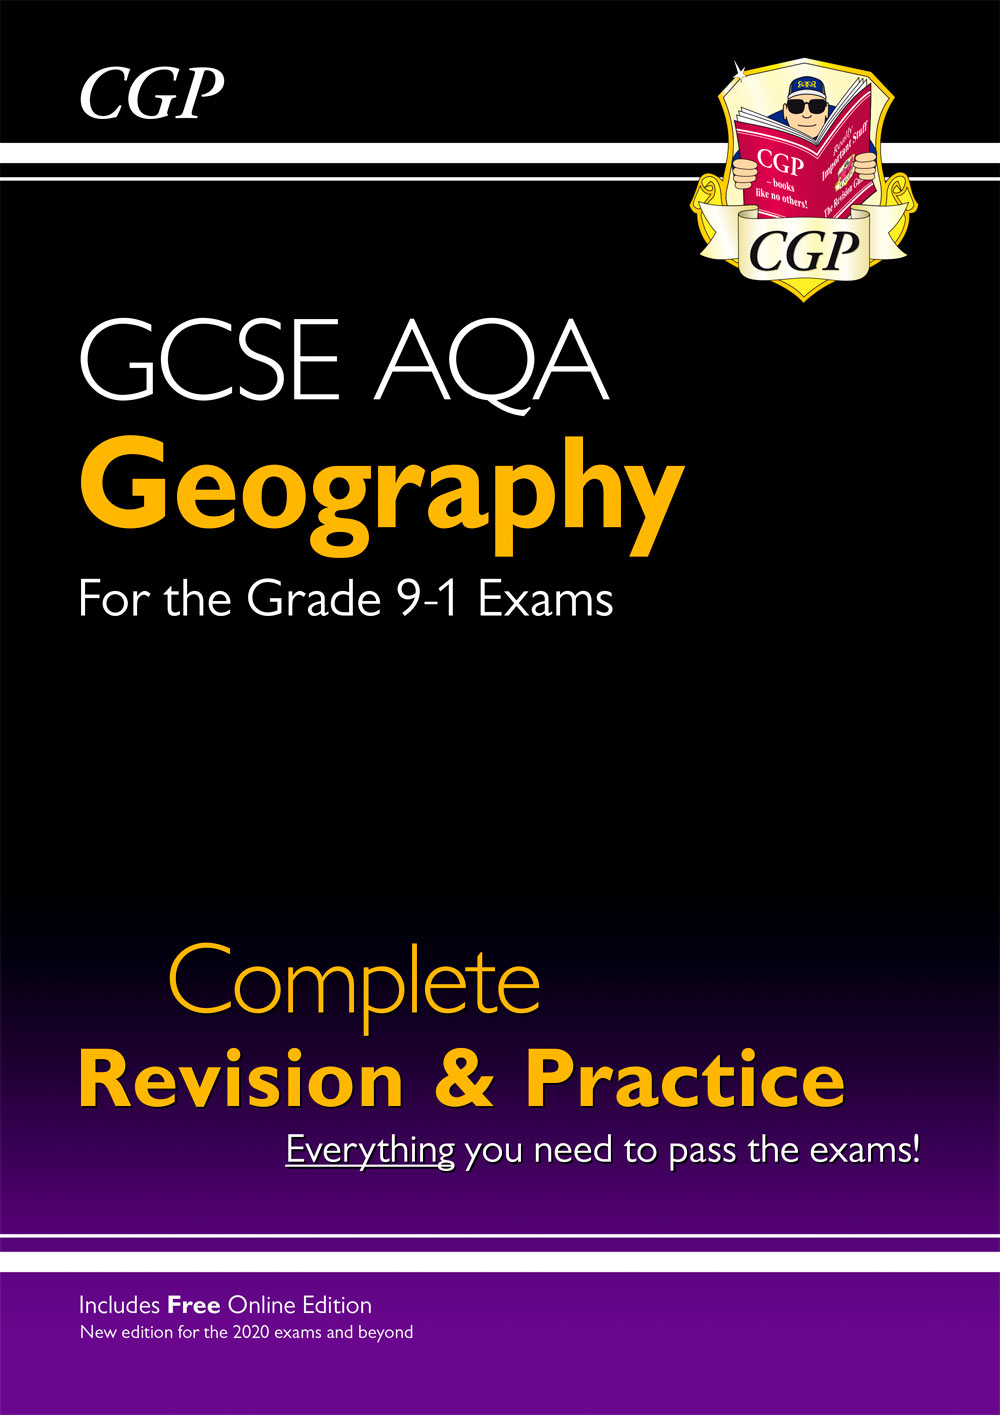 GAS42 - New GCSE 9-1 Geography AQA Complete Revision & Practice (w/ Online Ed) - New for 2021 exams